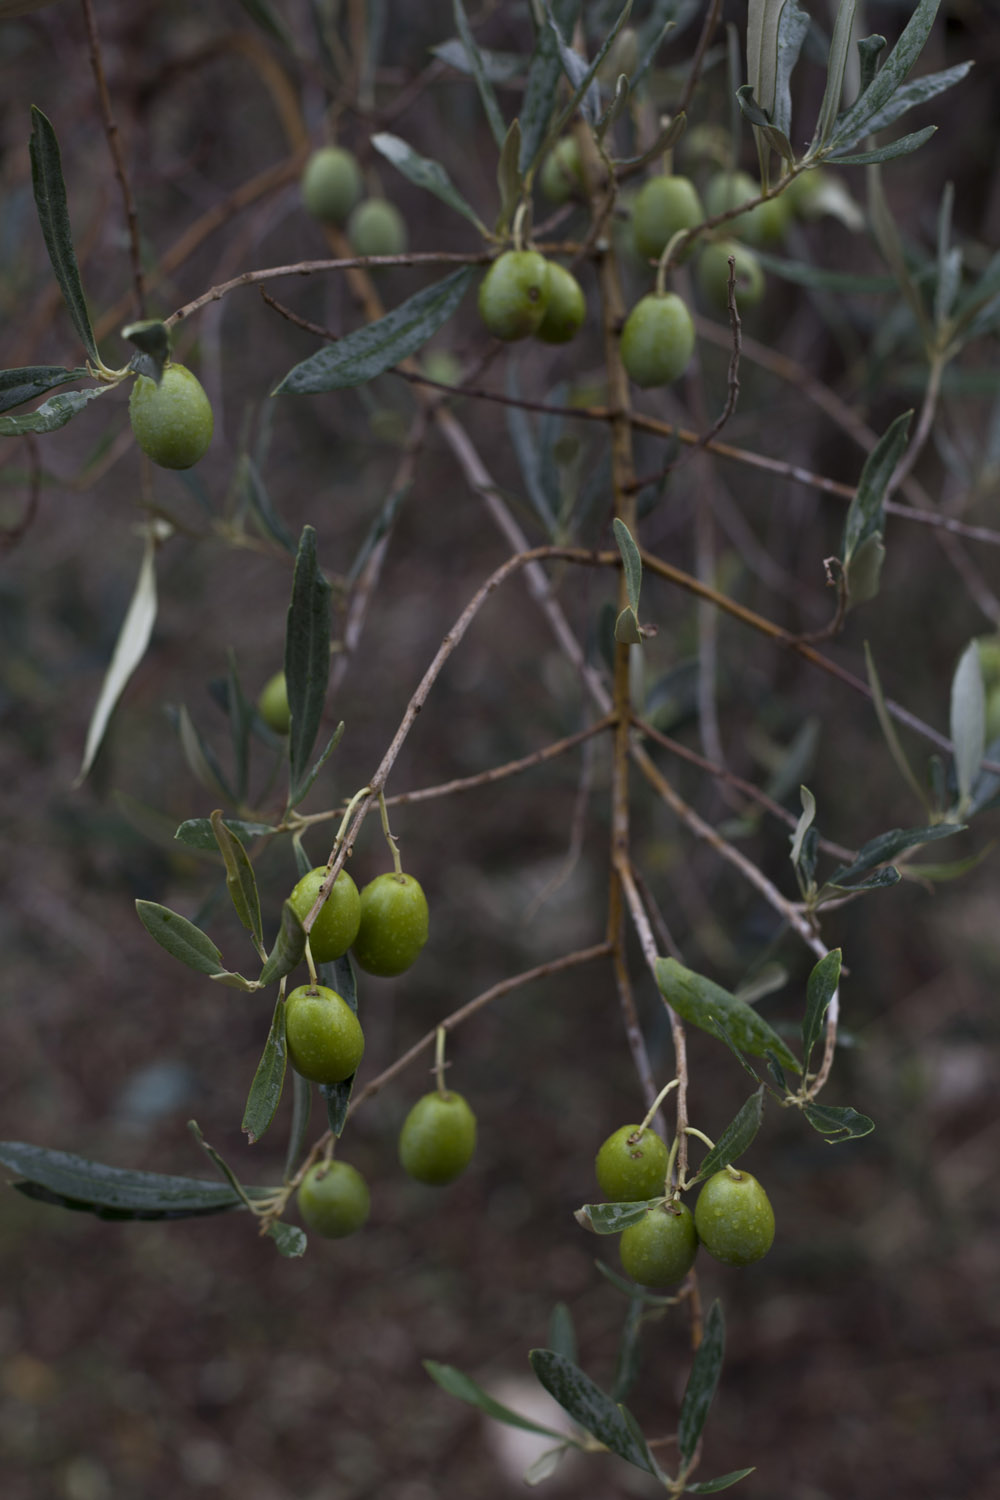 Olives at the University of Bari's experimental field in Valenzano, where researchers are working to adapt Puglia's olive varieties to super-intensive cultivation systems. (2017)